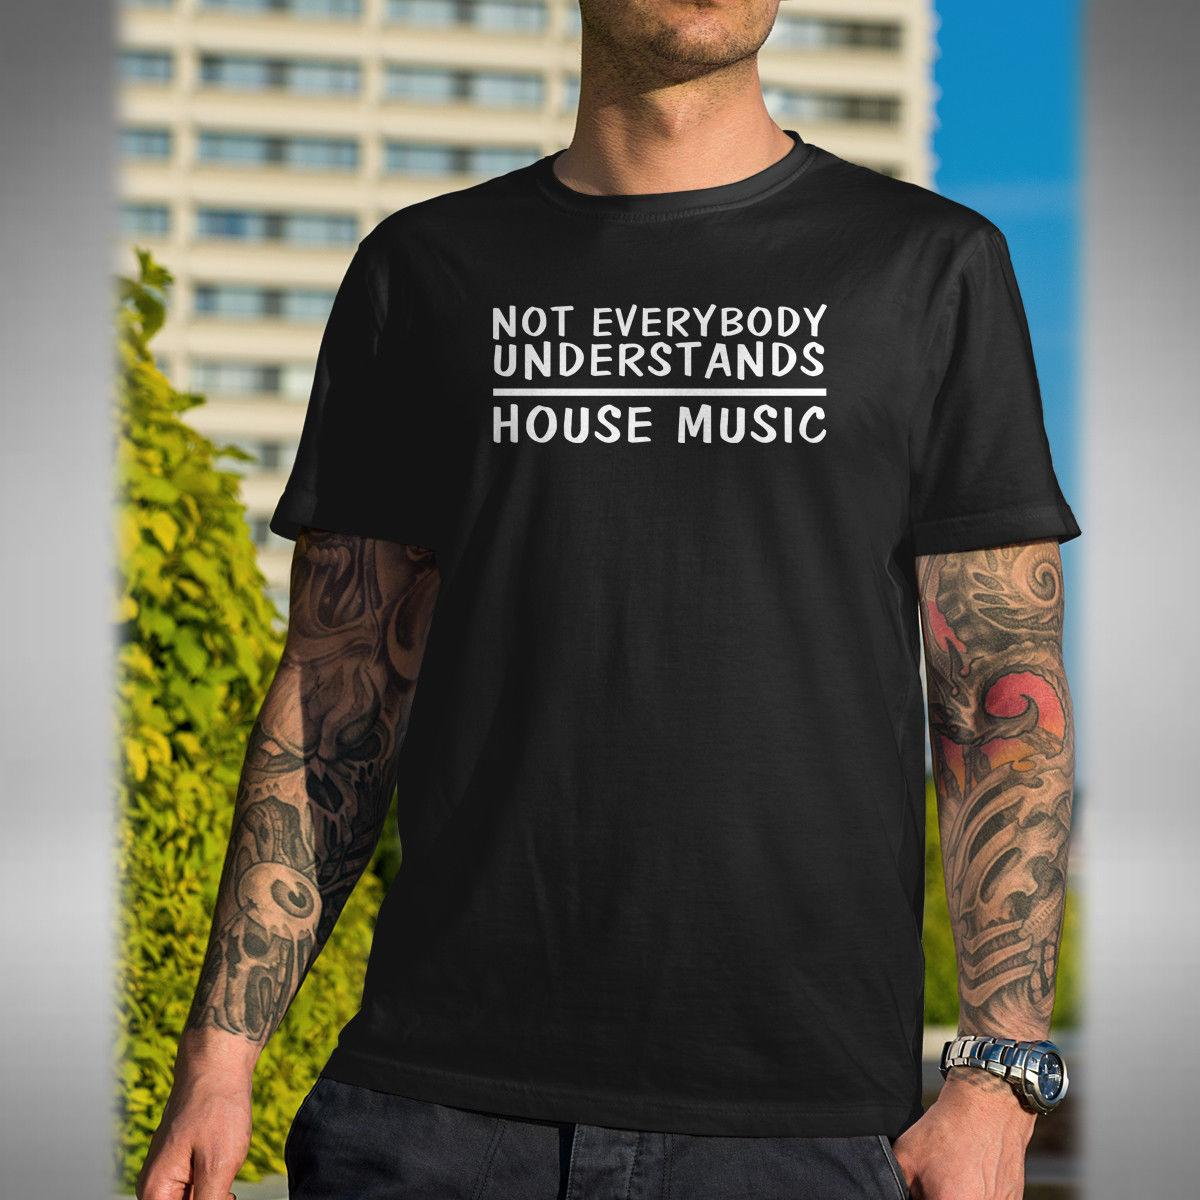 Not Everybody Understands House Music Mens T Shirt Dance Dj Allnighter fear cosplay liverpoott tshirt